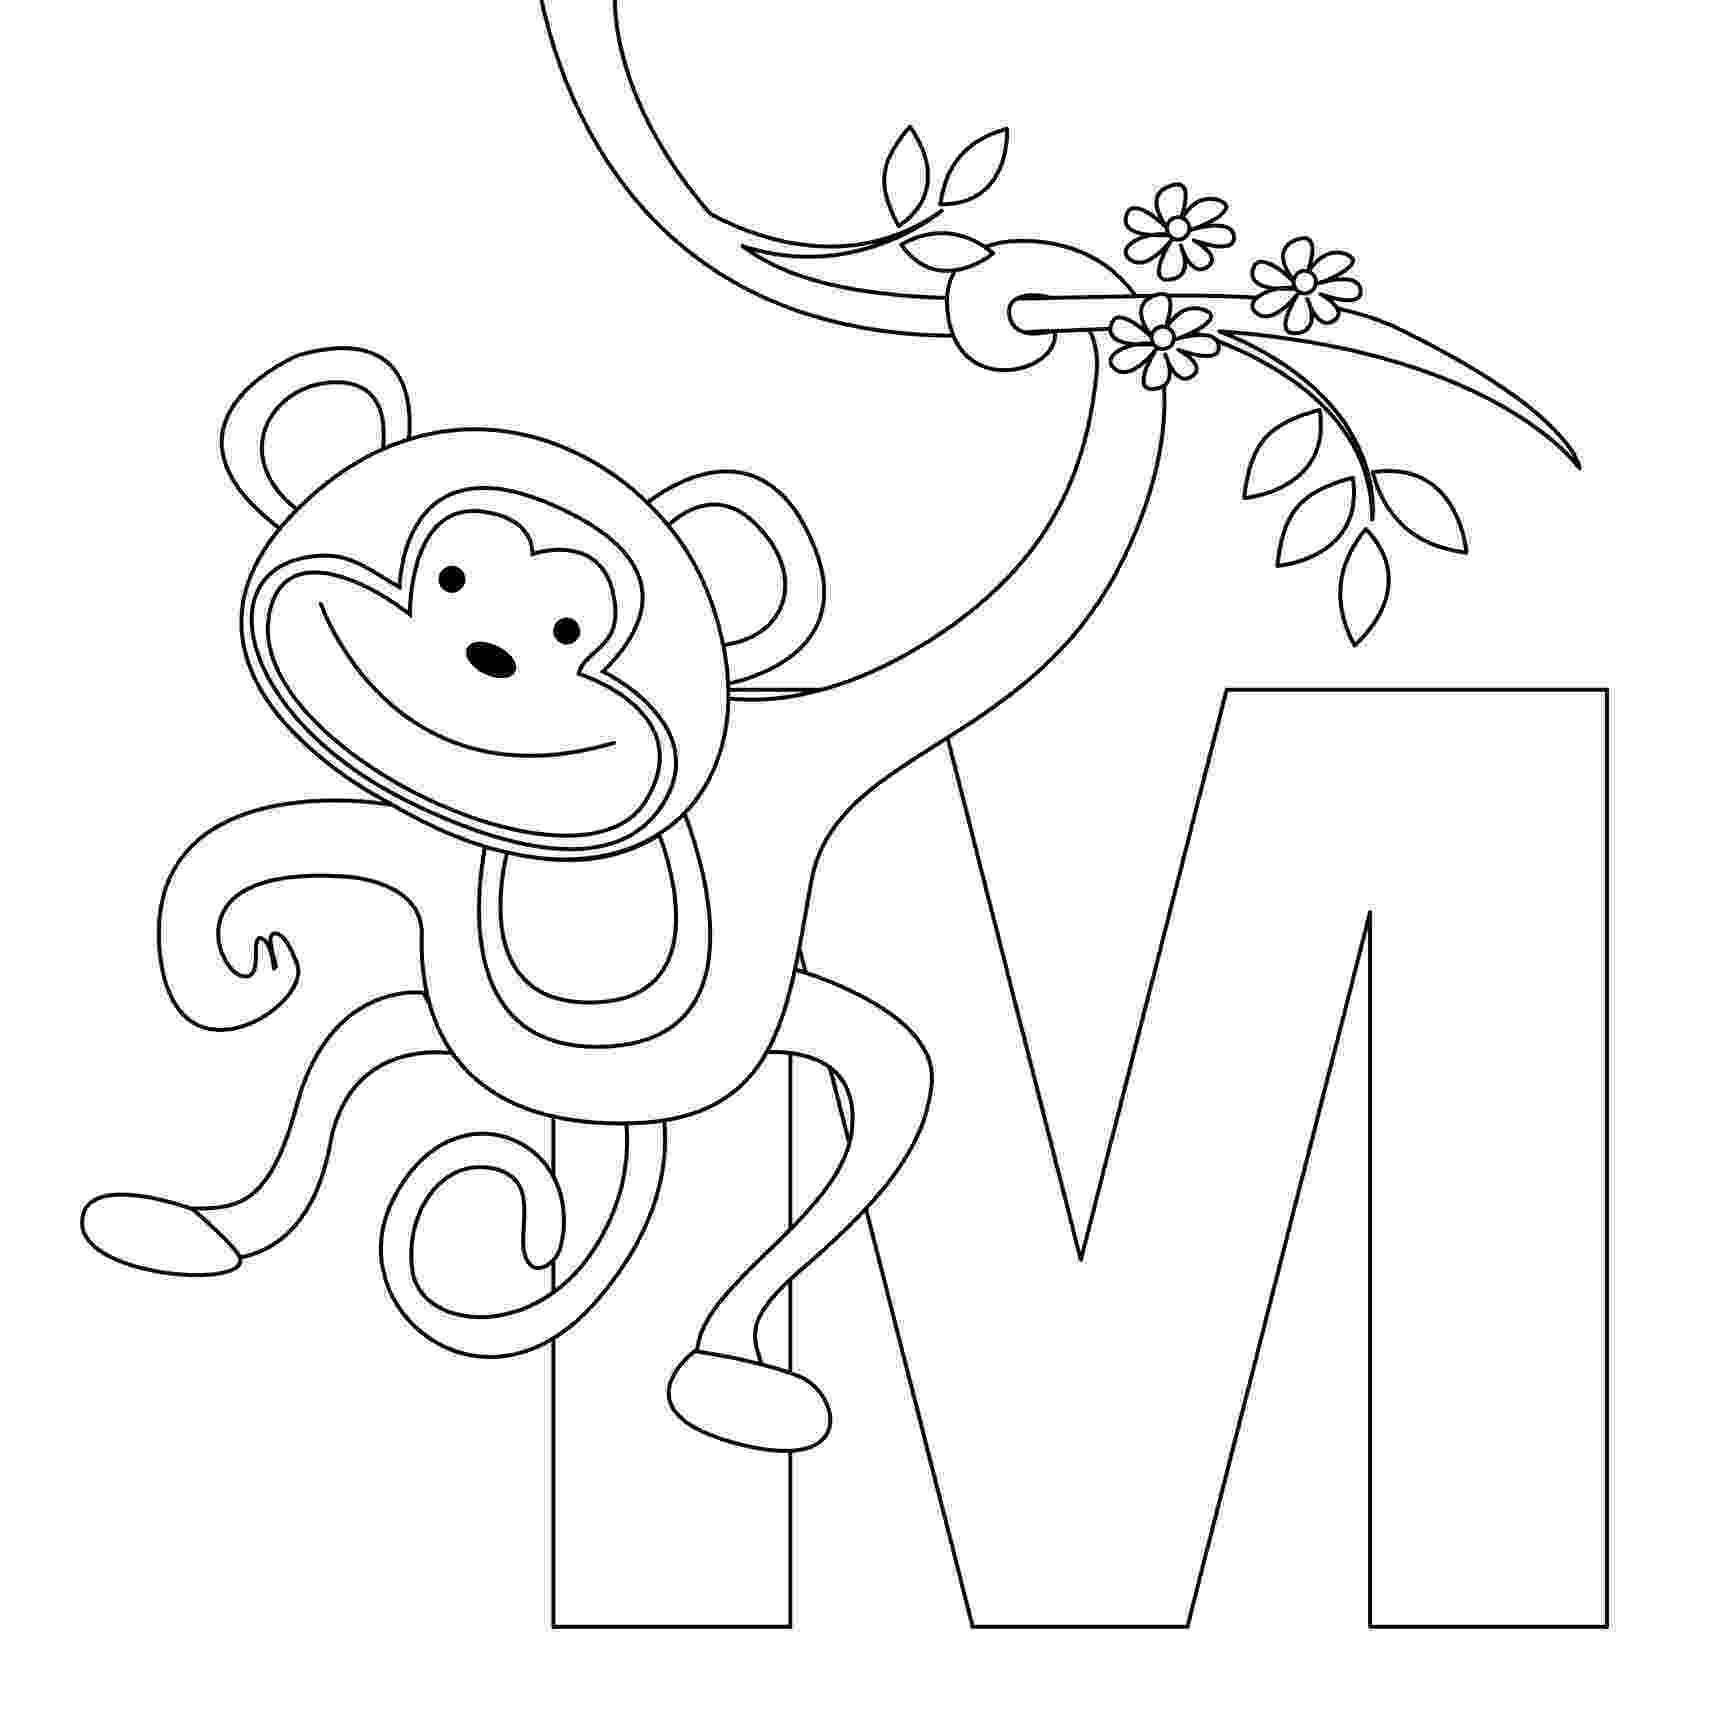 coloring alphabet letters free printable alphabet coloring pages for kids best letters alphabet coloring 1 1